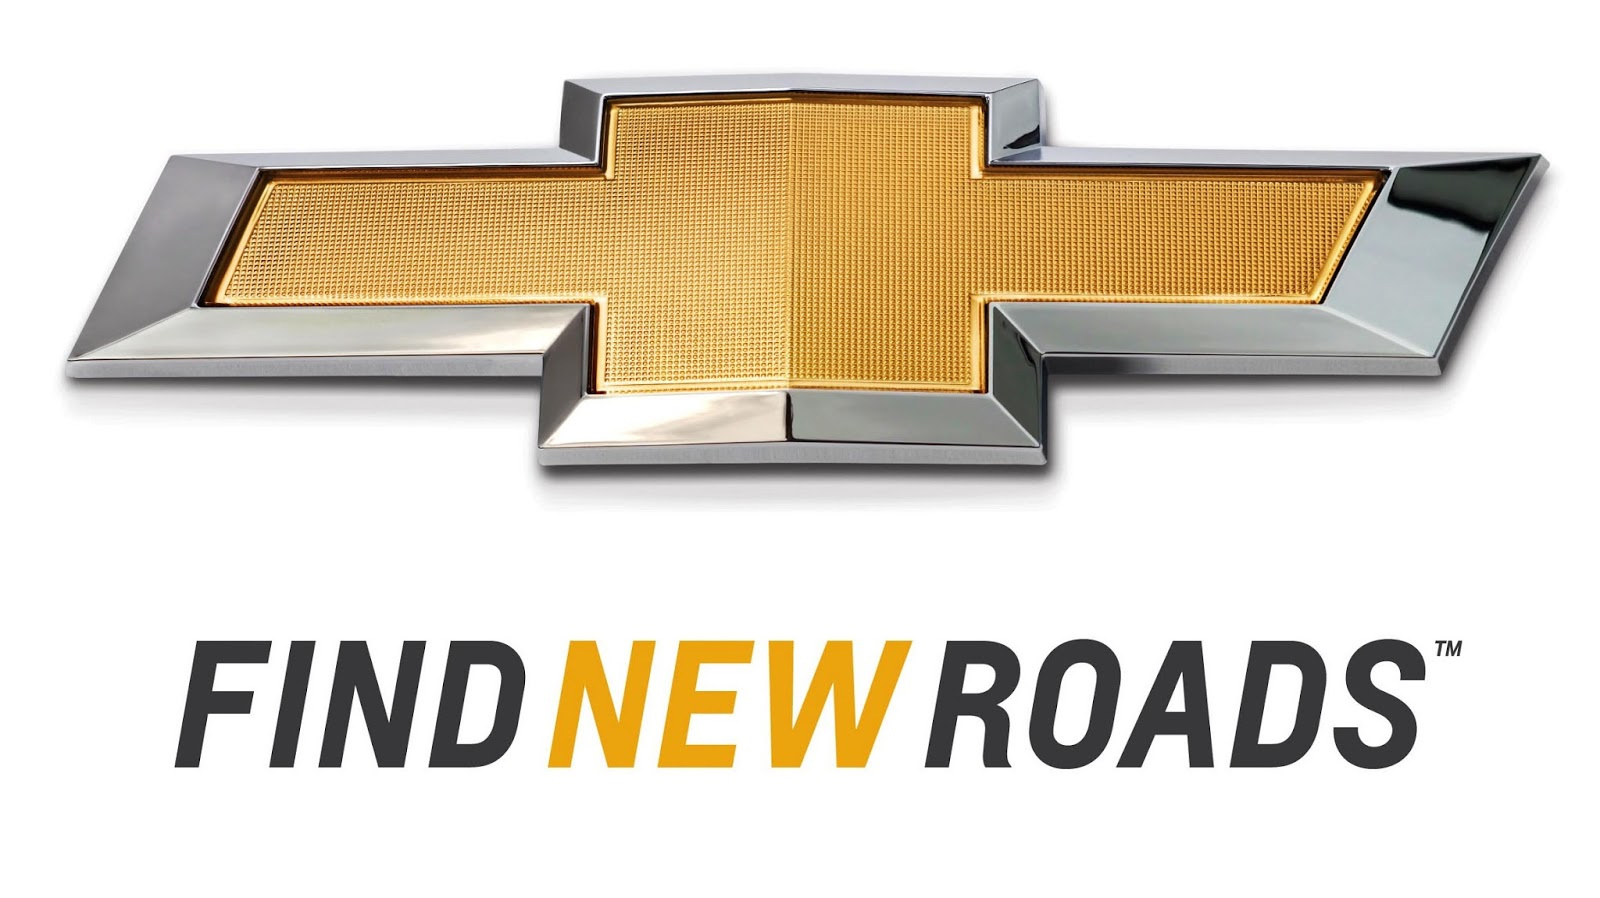 chevrolet find new roads logo png wwwimgkidcom the